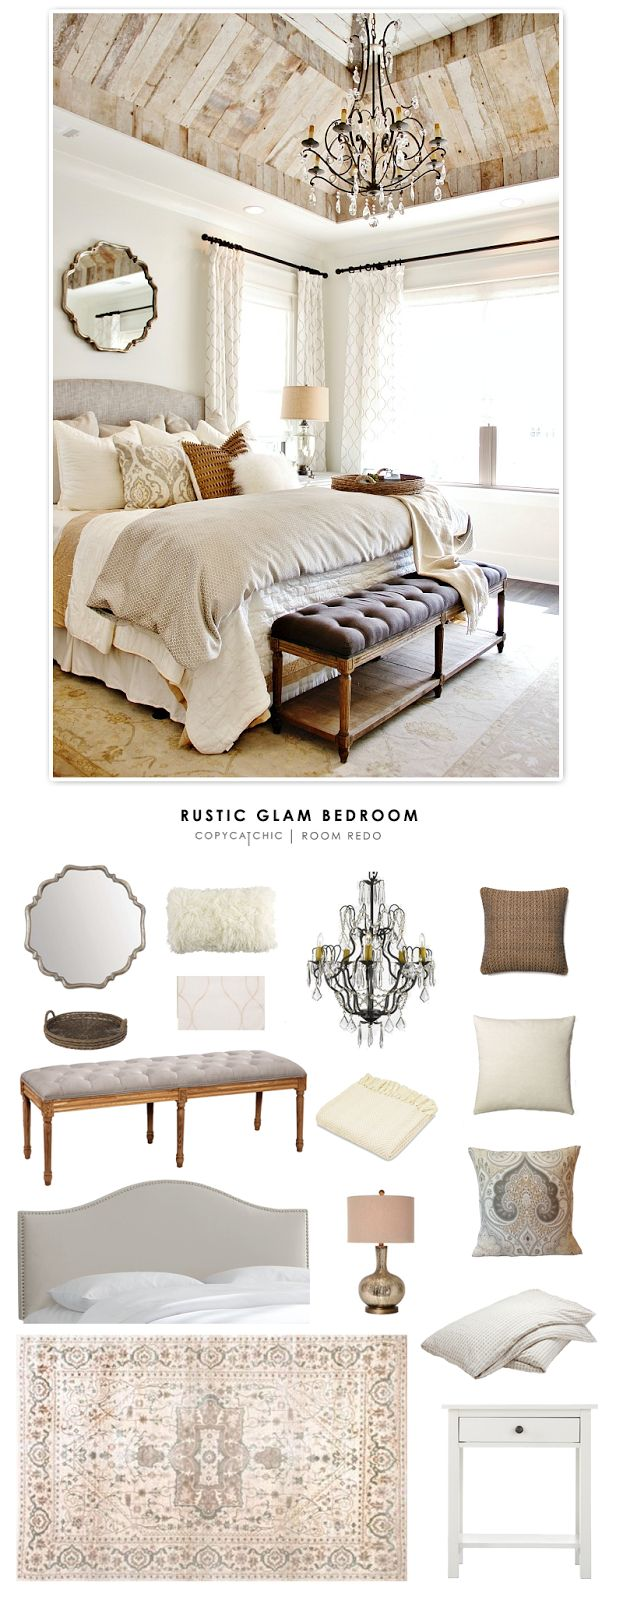 Best 25+ Rustic chic bedrooms ideas on Pinterest | Rustic chic ...